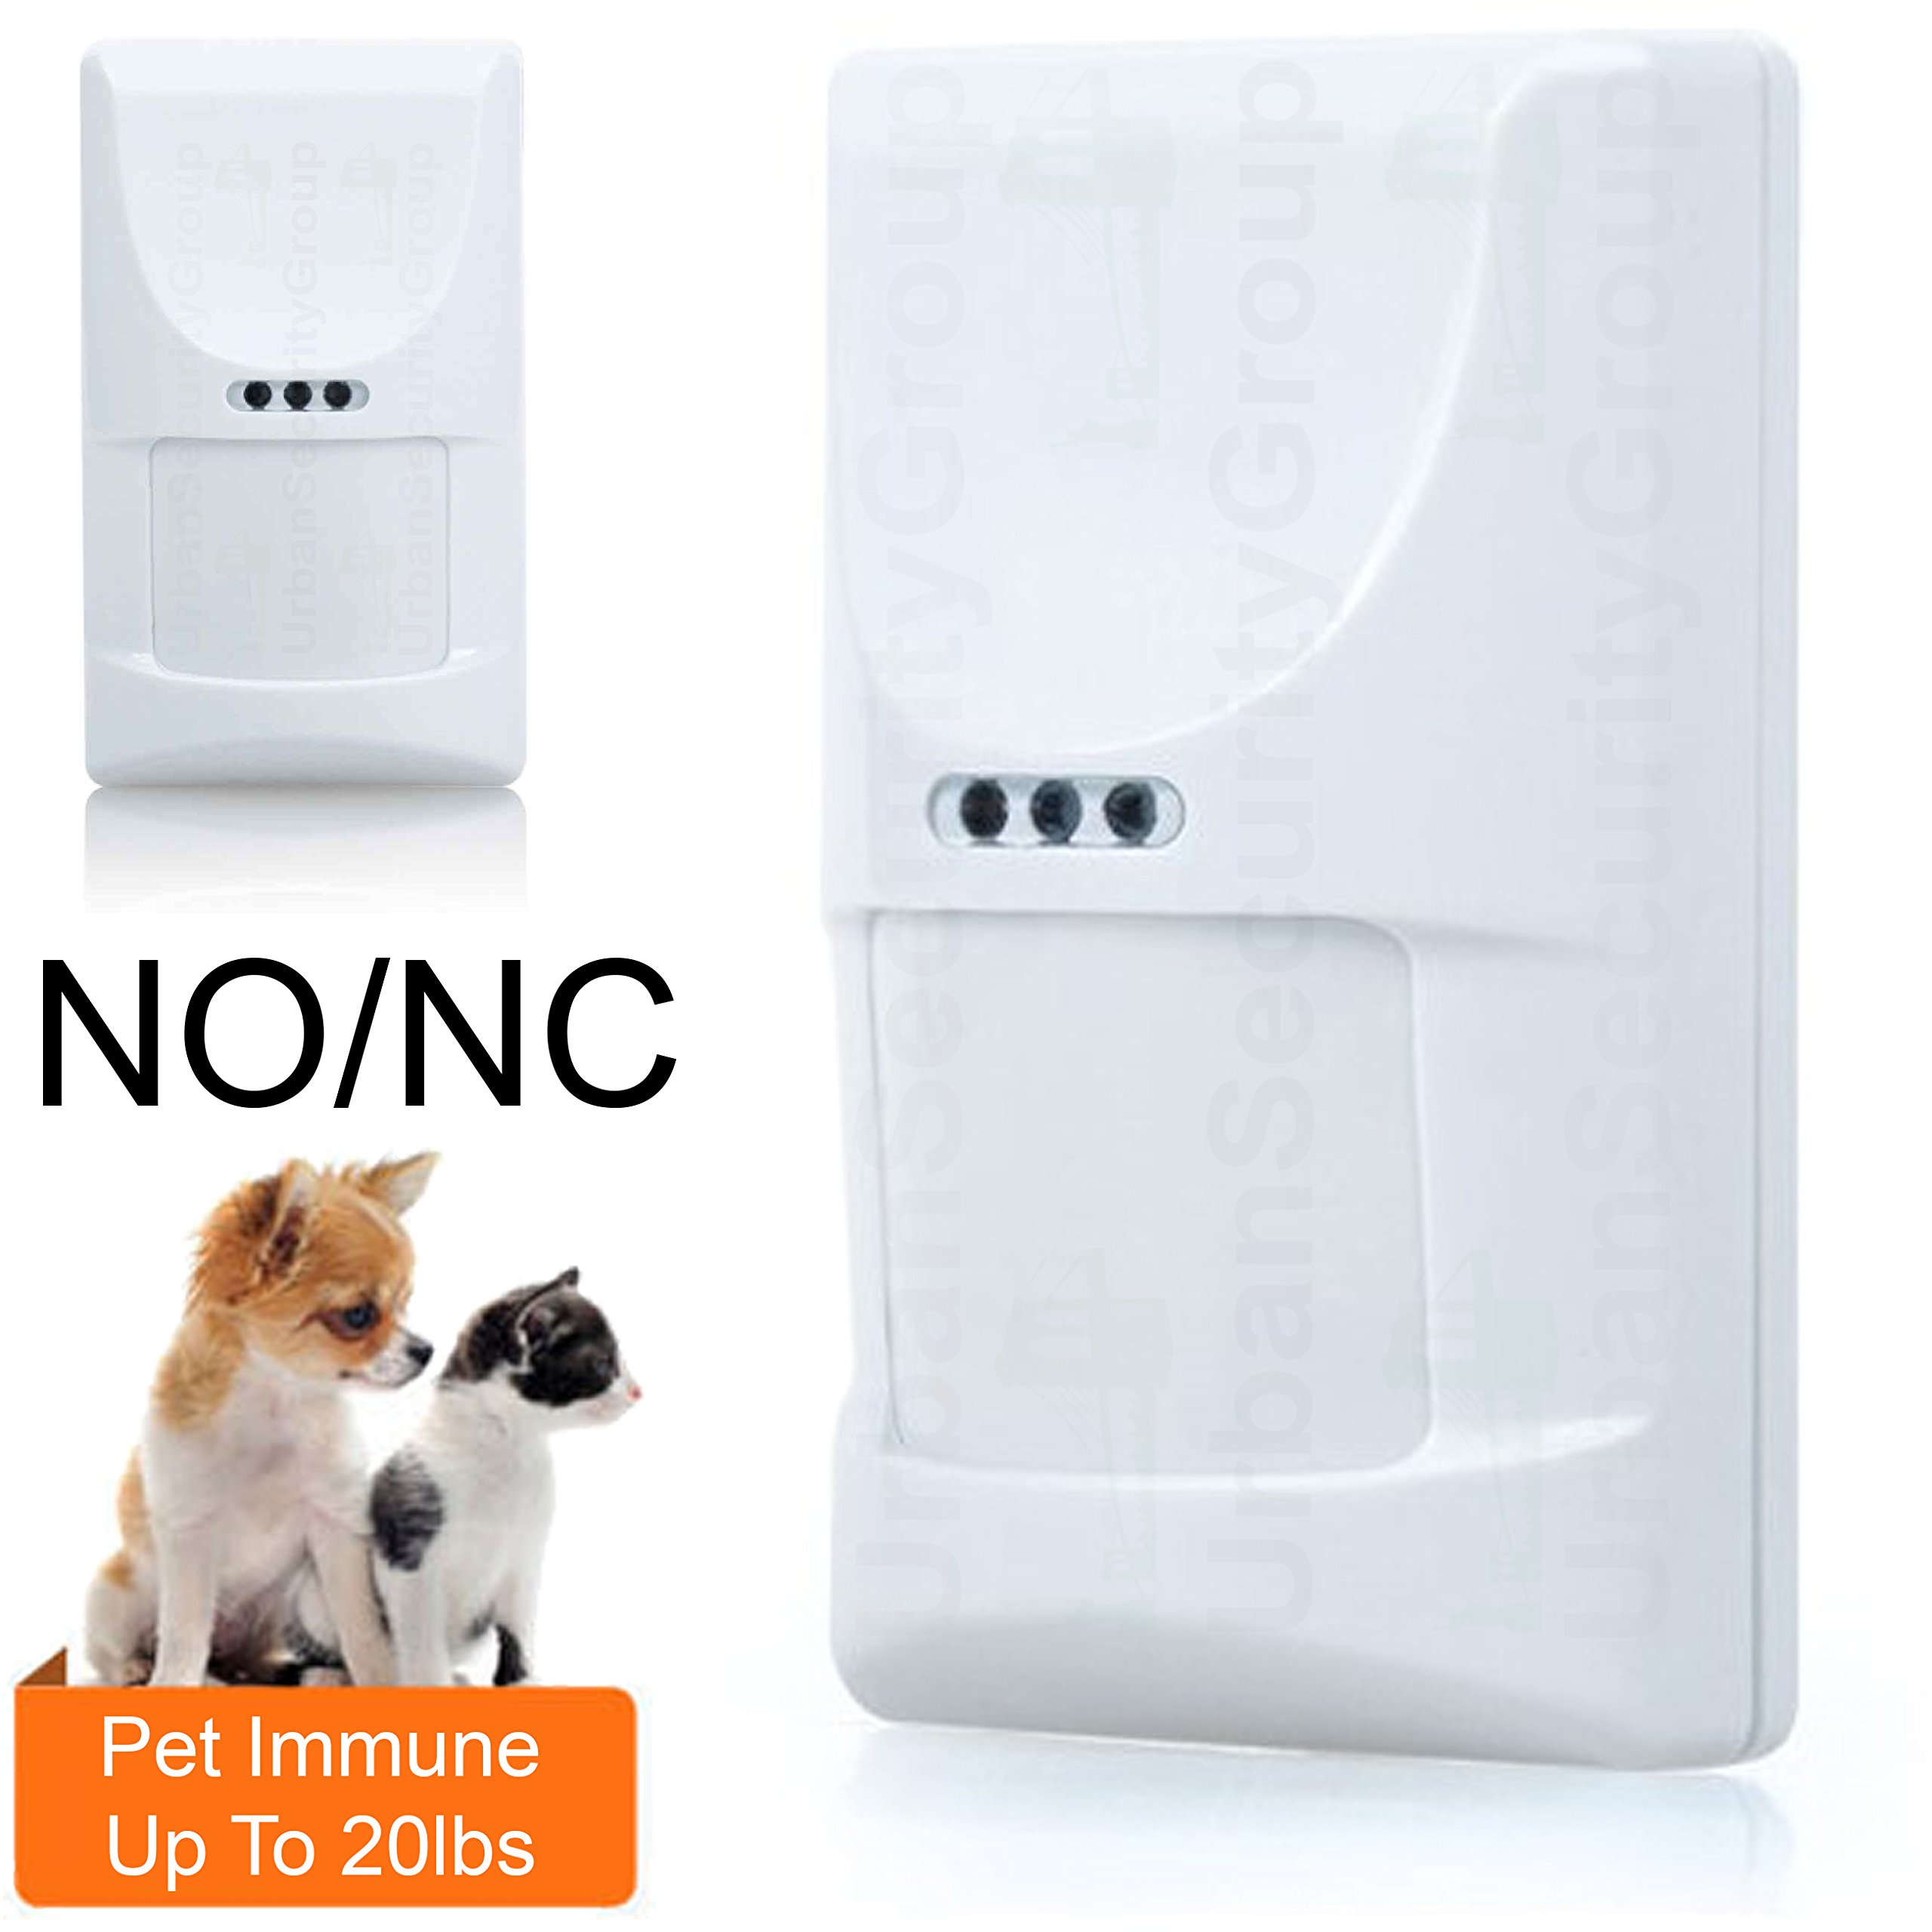 "USG Wired Motion Detector Alarm Motion Sensor : Pet Immune Up To 20lbs / 16"": Normally Open or Normally Close : 9-16V DC : 12m x 12m 110° Coverage @ 88°F"